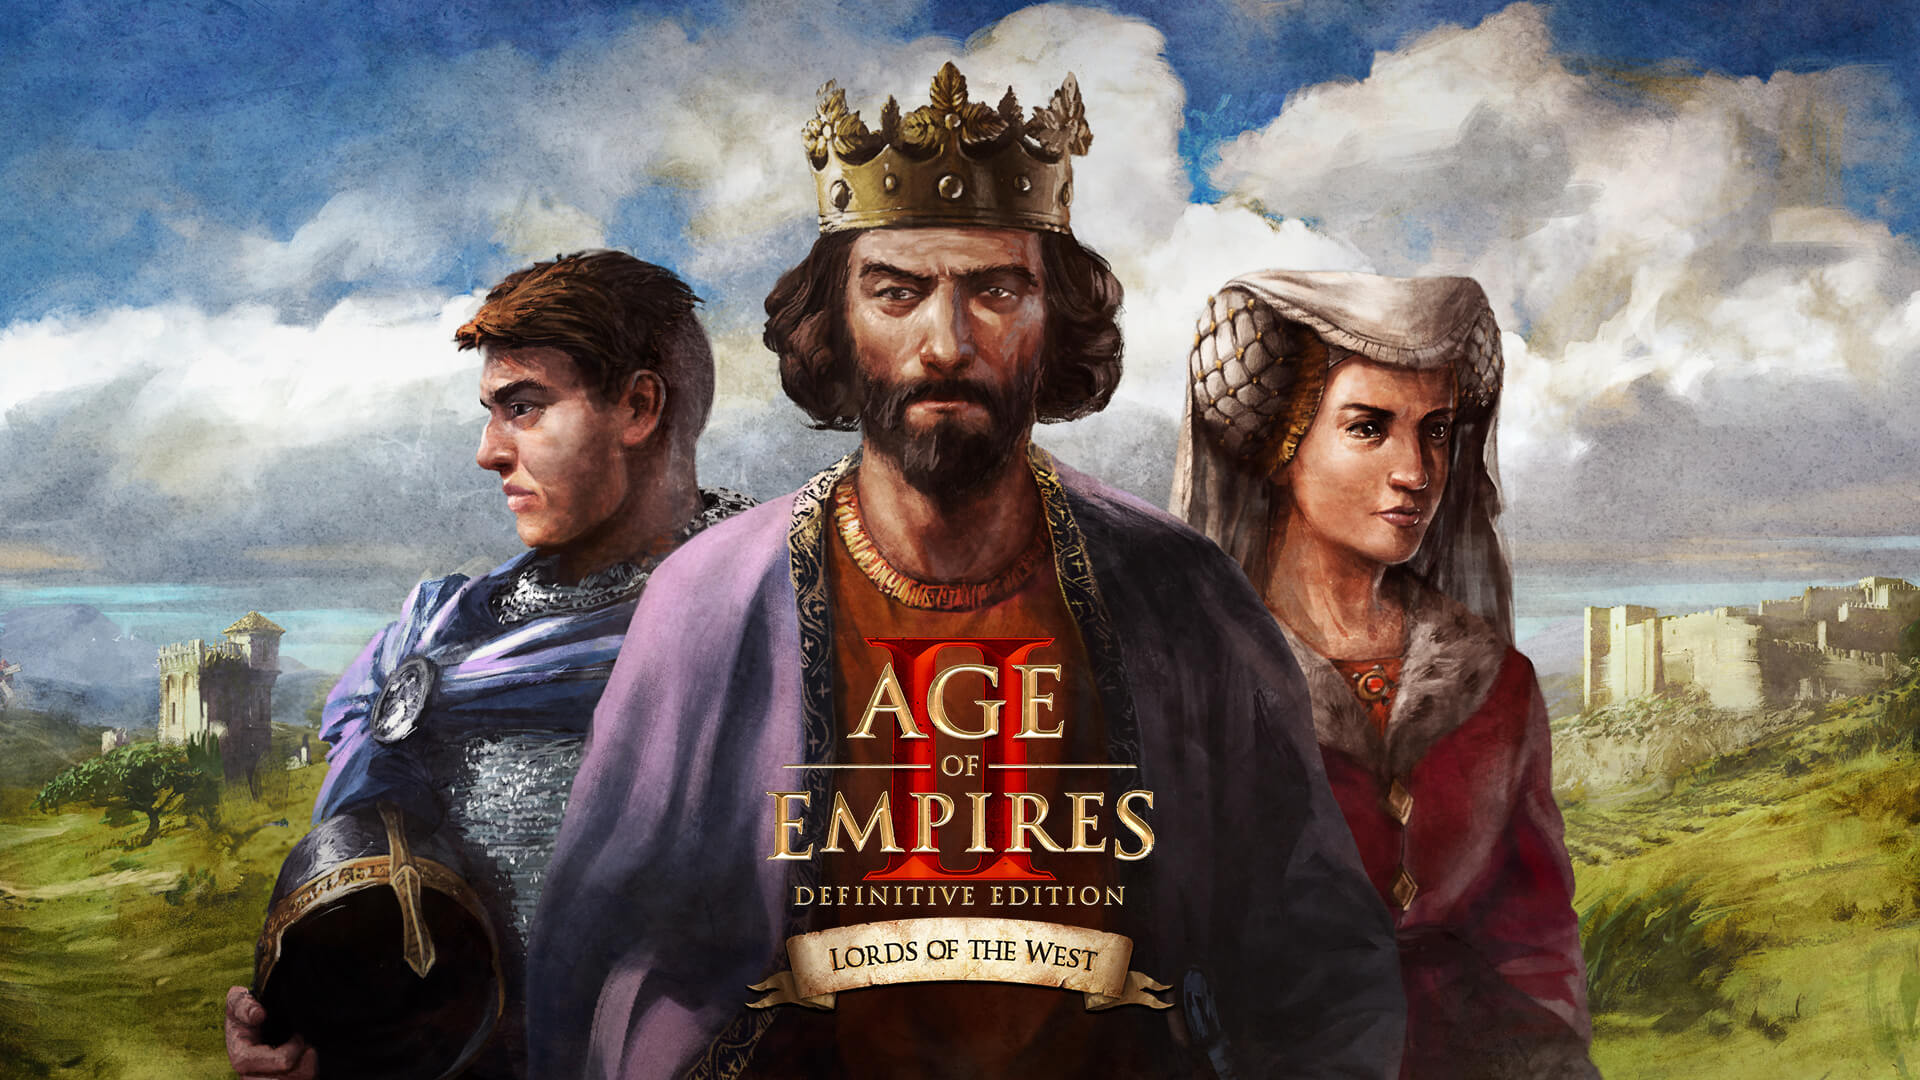 Age-of-Empires-II-Lords-of-the-West